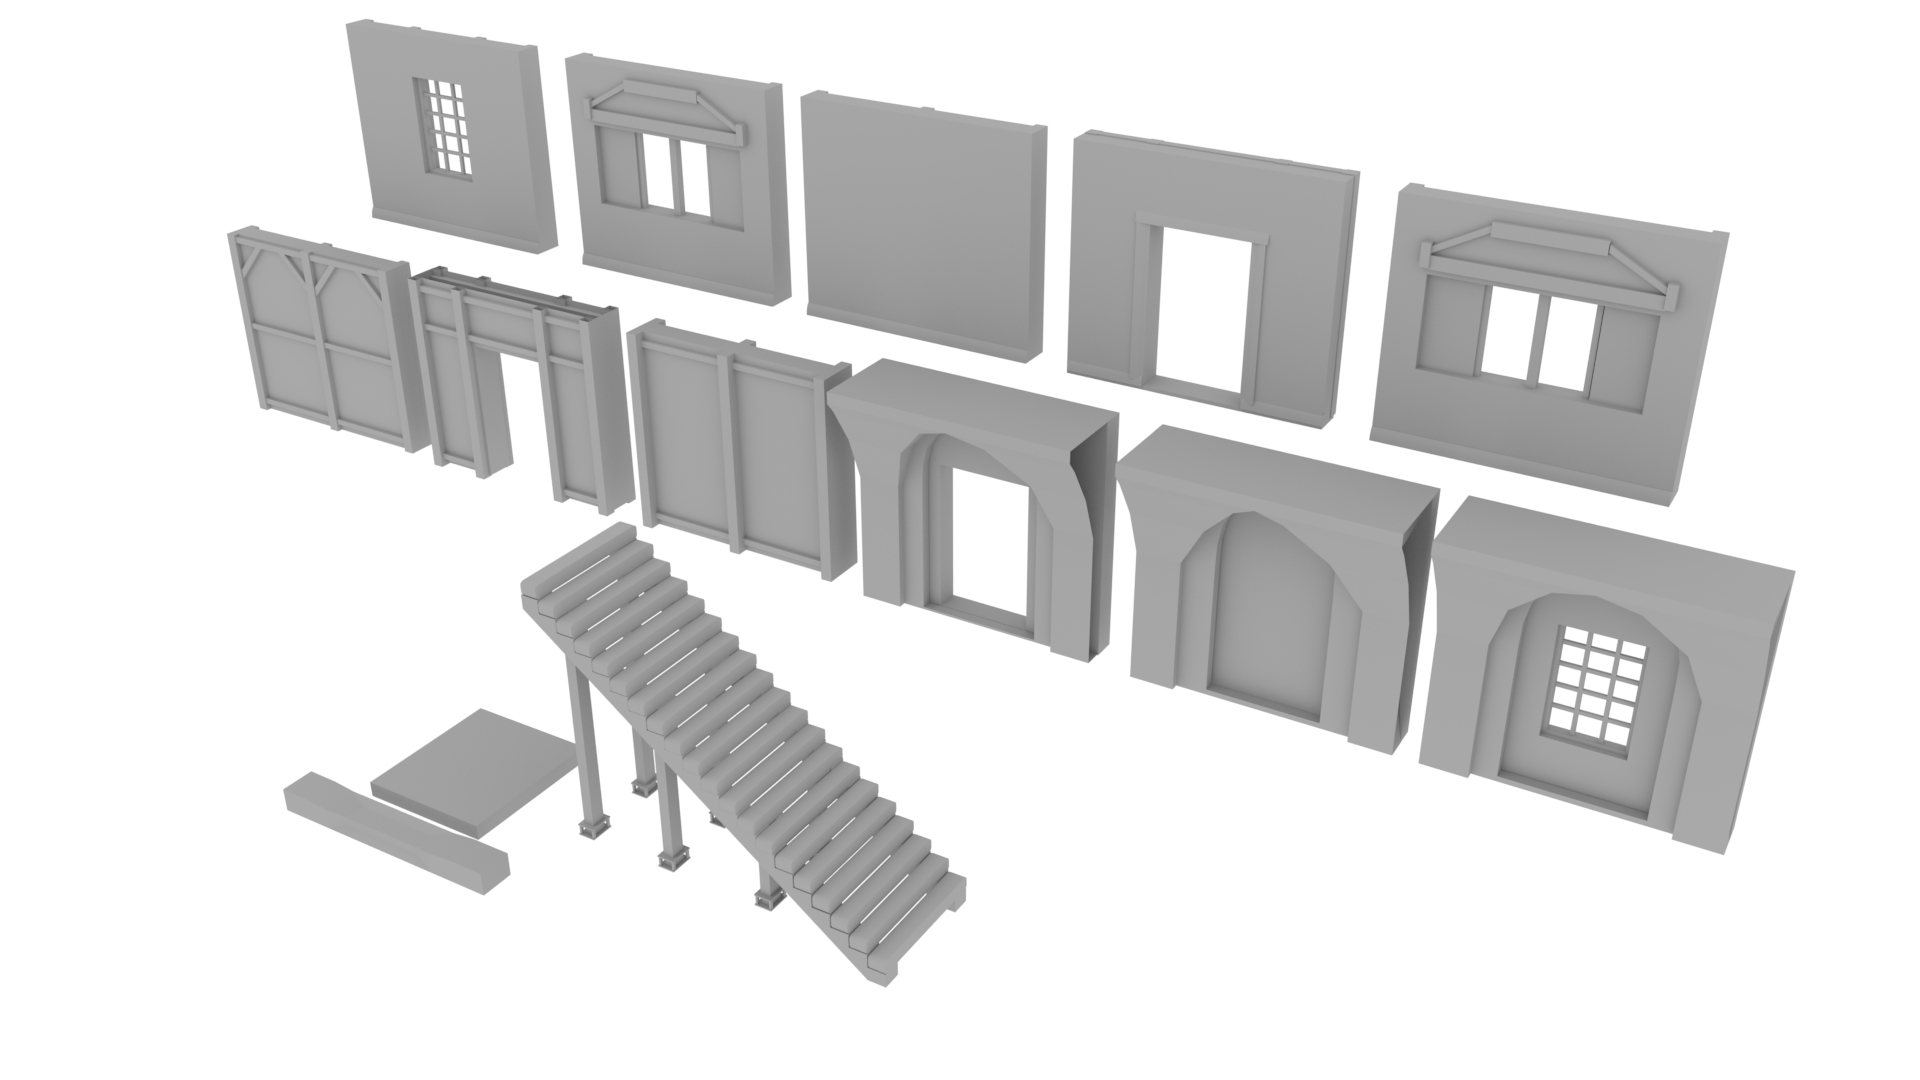 A modular building kit for the Byzantine city.